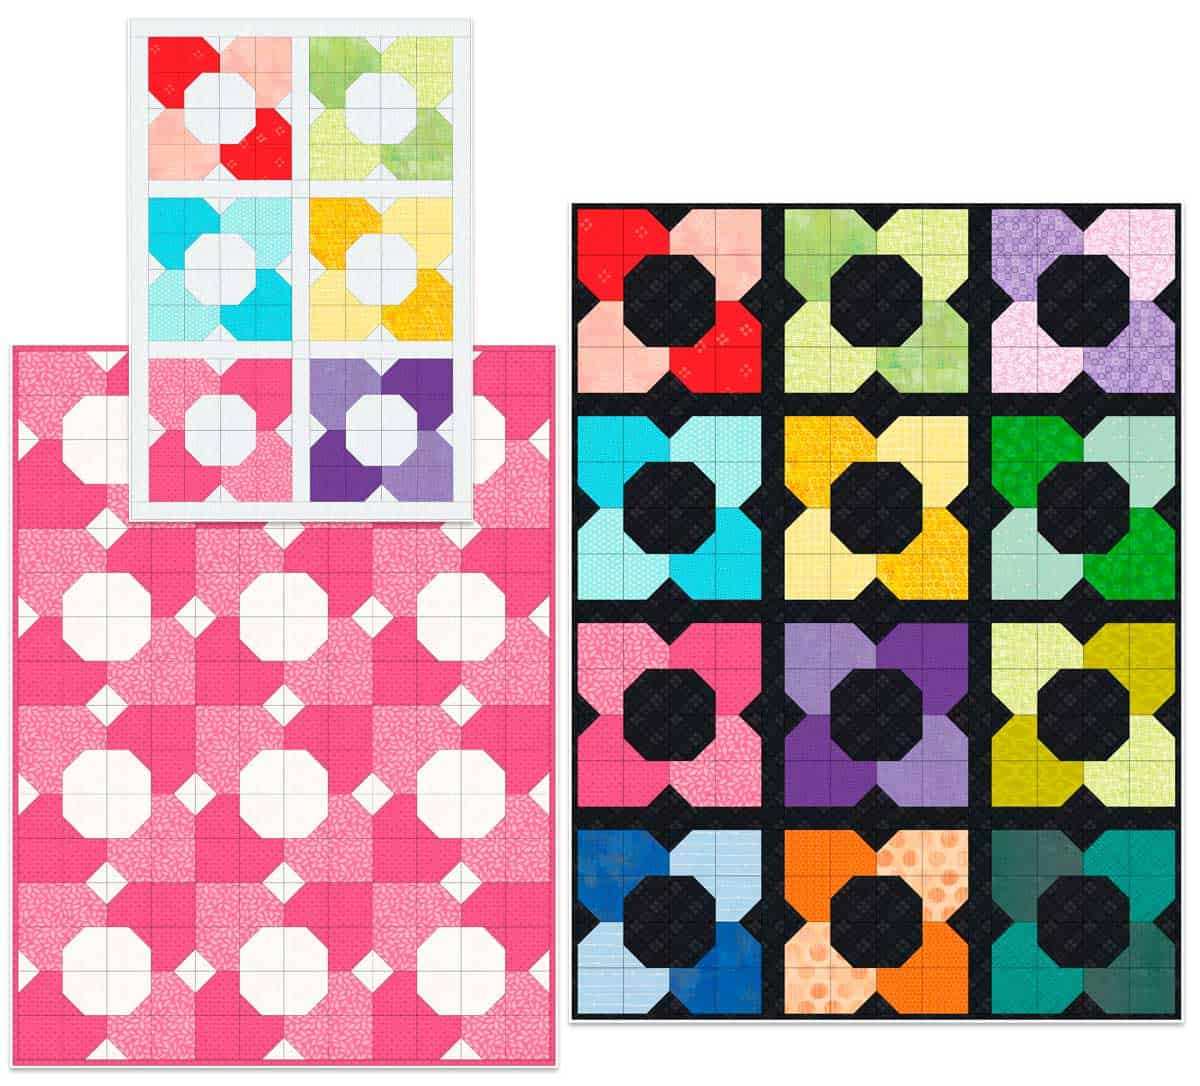 Samples of the morning glory quilt block